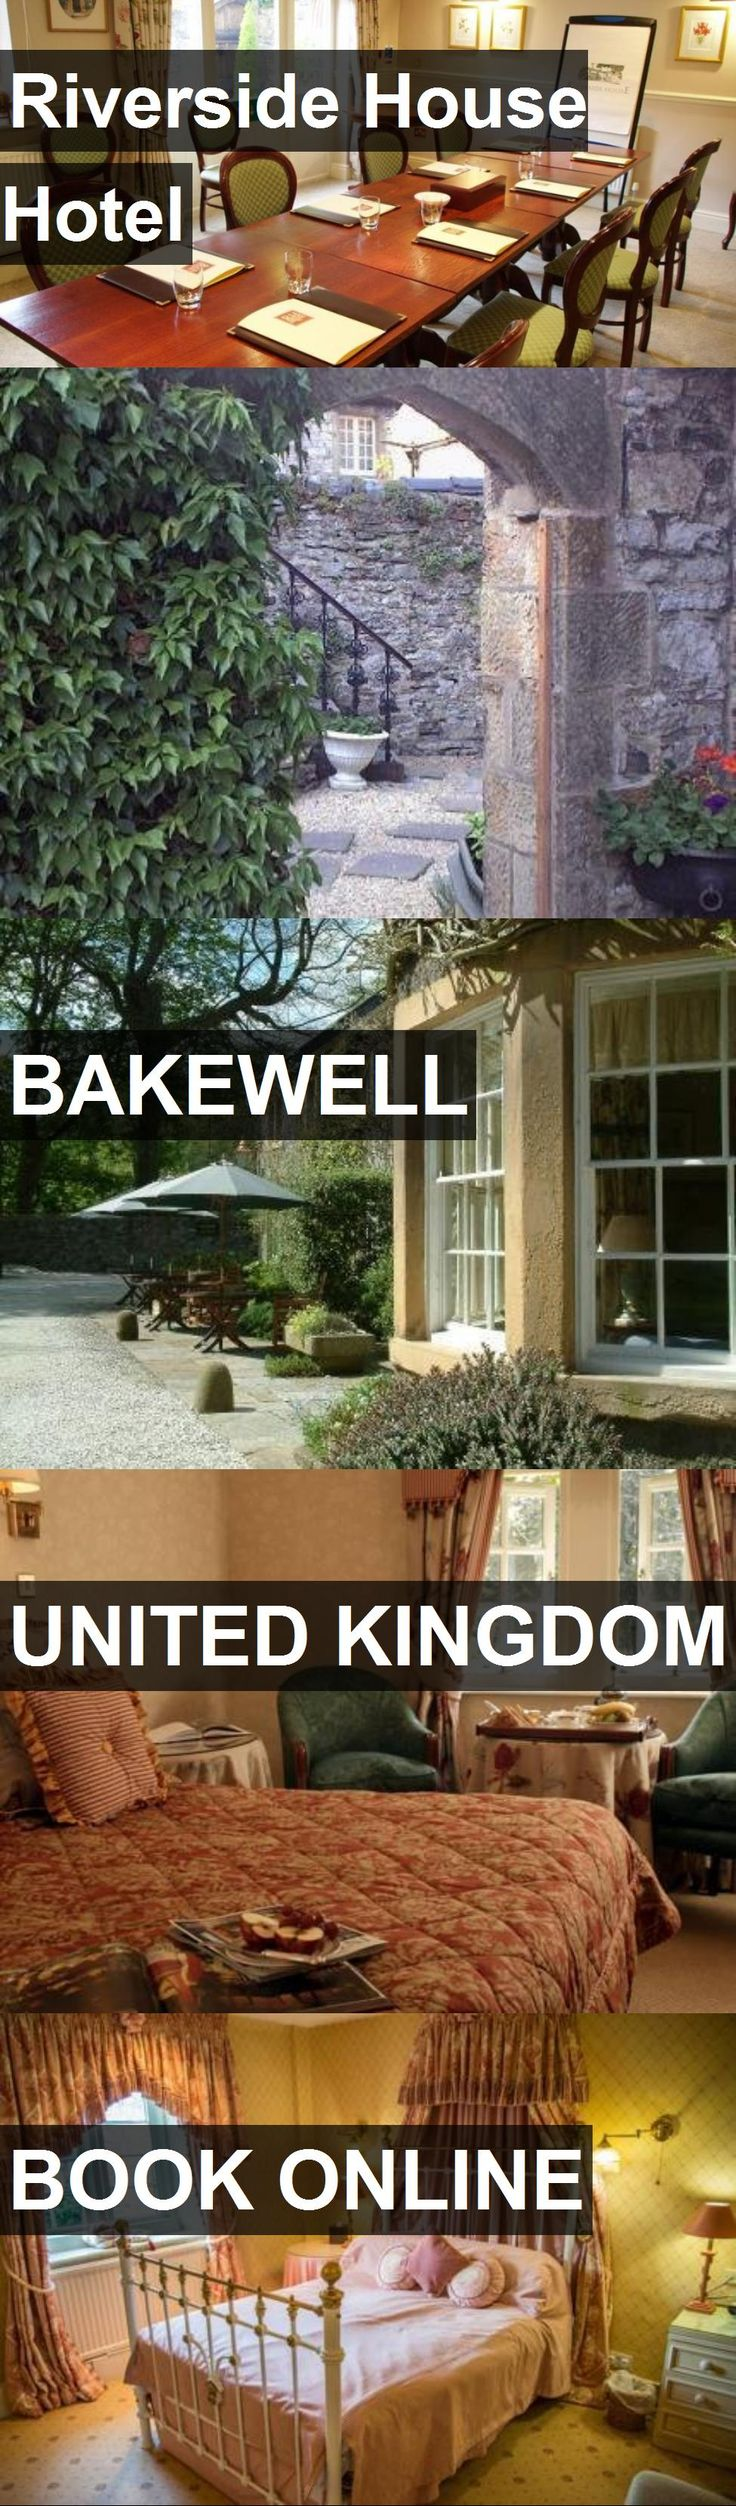 Hotel Riverside House Hotel in Bakewell, United Kingdom. For more information, photos, reviews and best prices please follow the link. #UnitedKingdom #Bakewell #RiversideHouseHotel #hotel #travel #vacation